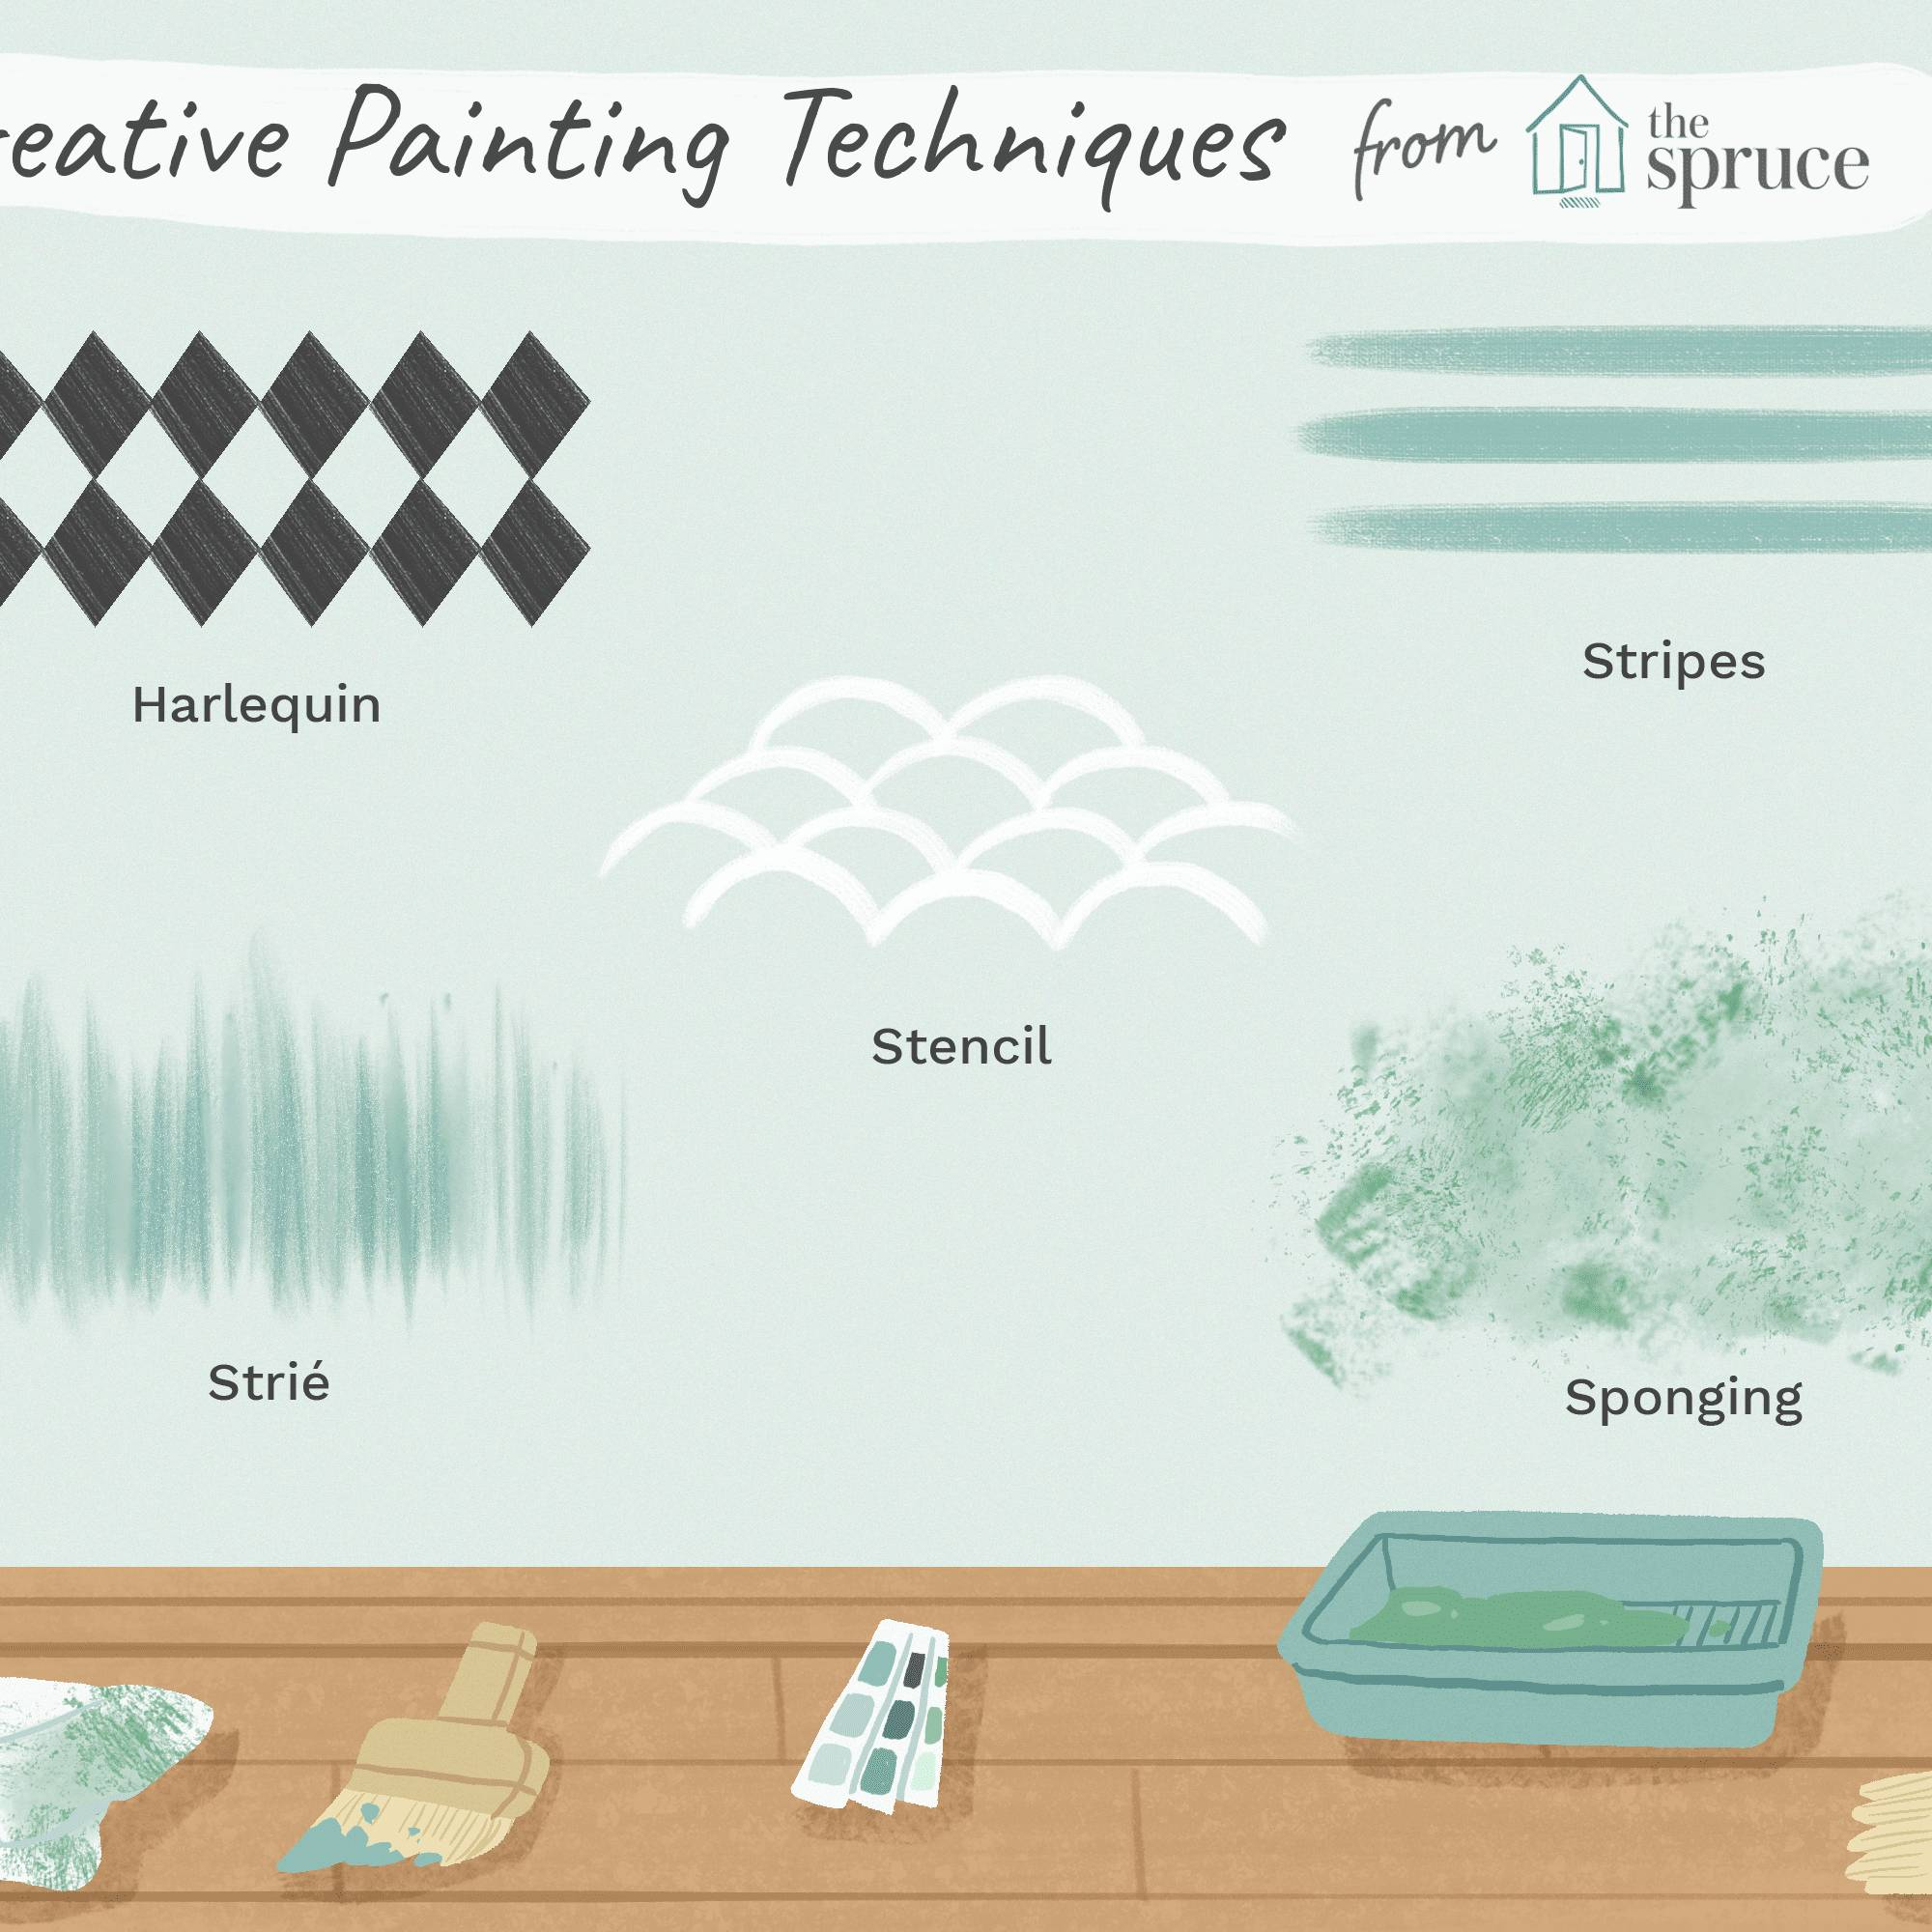 decorative paint techniques for bedroom walls Final a143cc3e6d164ffda2537cb4642b1880